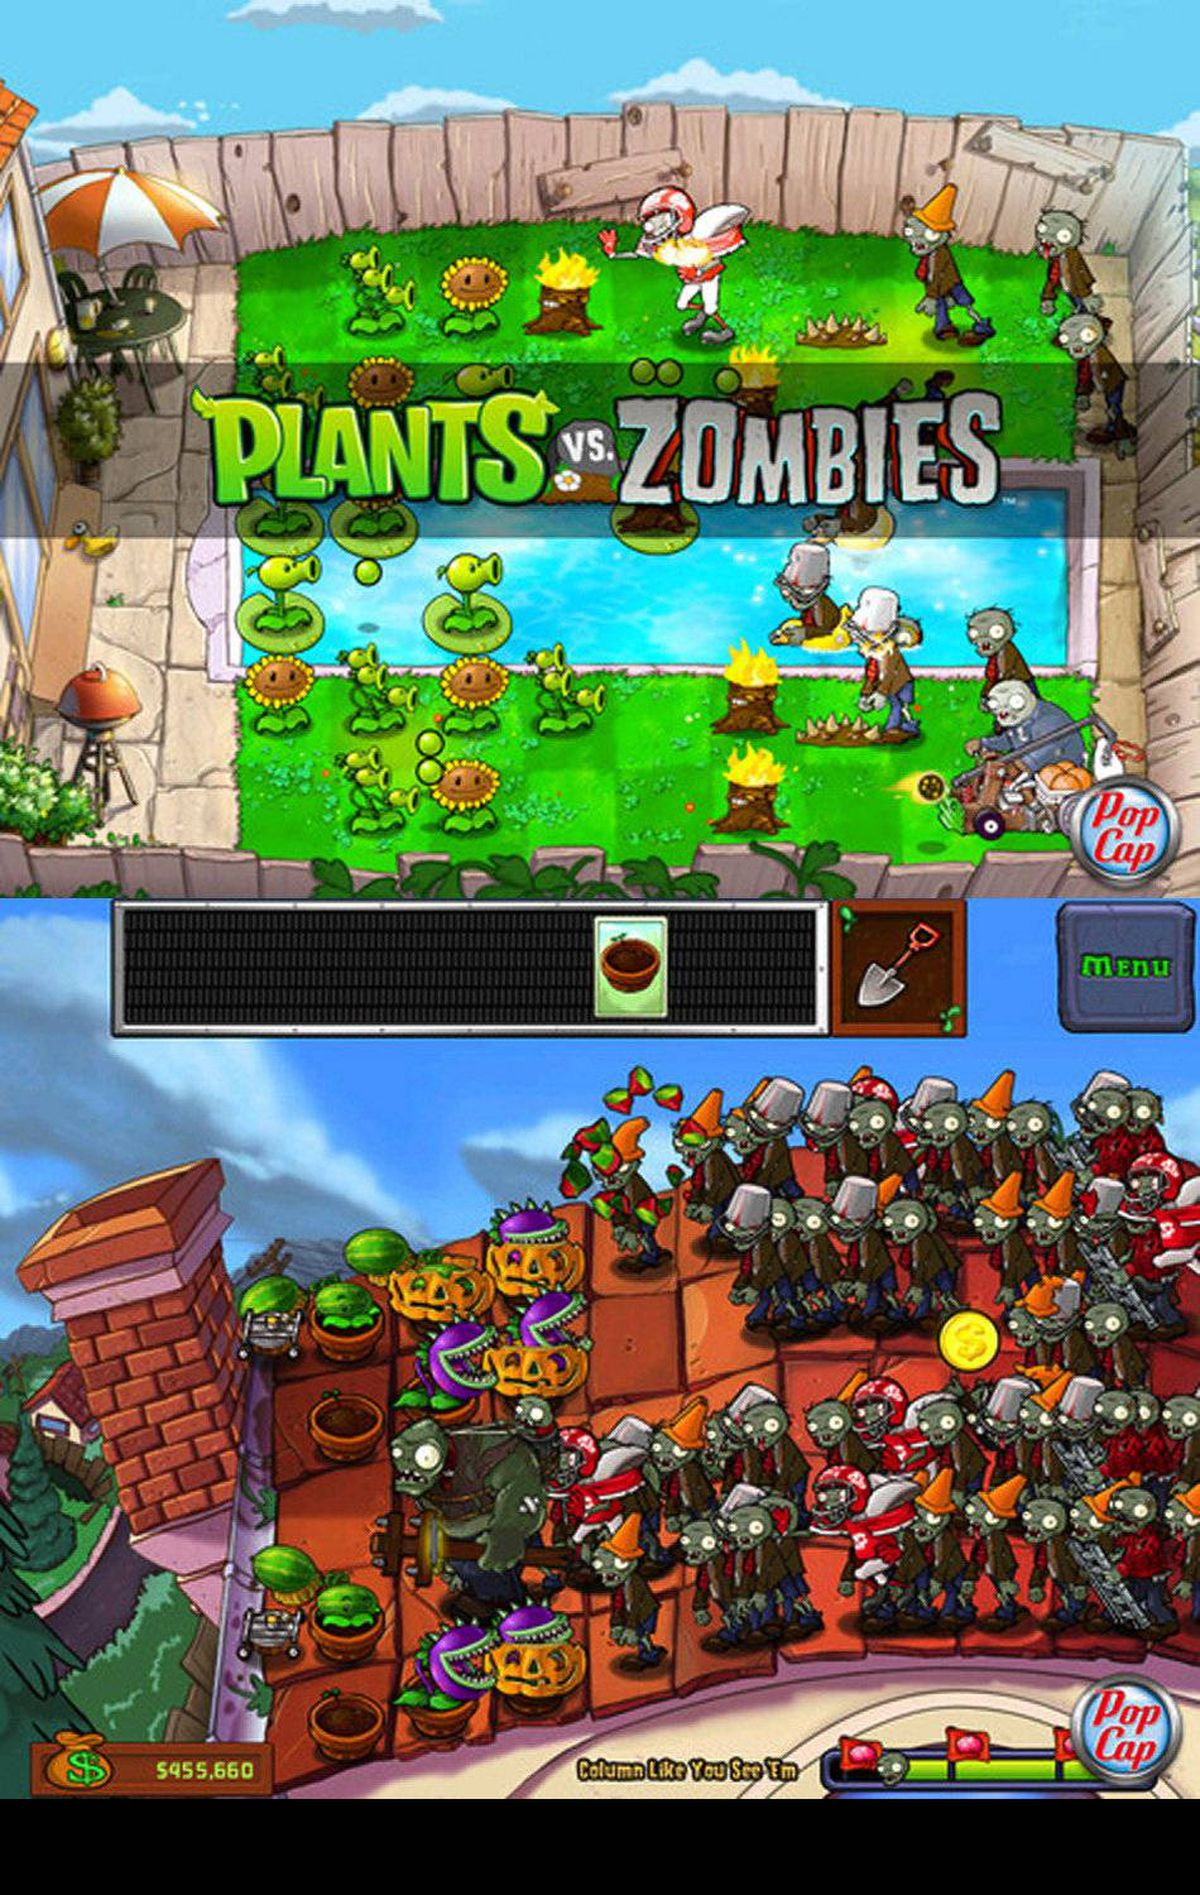 "Plants vs Zombies HD ""The zombies... are coming!"" says an ominous, raspy voice. Your job is to defend your home from an undead mob. The only weapons at hand are the plants in your garden. If the zombies reach your door, they will eat your brains. This sounds like a dark game but it's not. The plants are friendly, the zombies are silly, and their battles are imaginative and charming. Gather up sunshine and use it as fuel to grow pea shooters, corn cannons and frozen melons that will slow down, confuse, and decapitate the zombies before they reach your door. The big screen HD version for iPad has great graphics and nice animations. It also makes use of the iPad's multi-touch gestures, so you can protect your home with more than one finger. At $6.99, PvZ is more expensive than many other games for iPad, but it's also one of the best. I can't count how many hours I've spent playing this game. (popcap.com)"